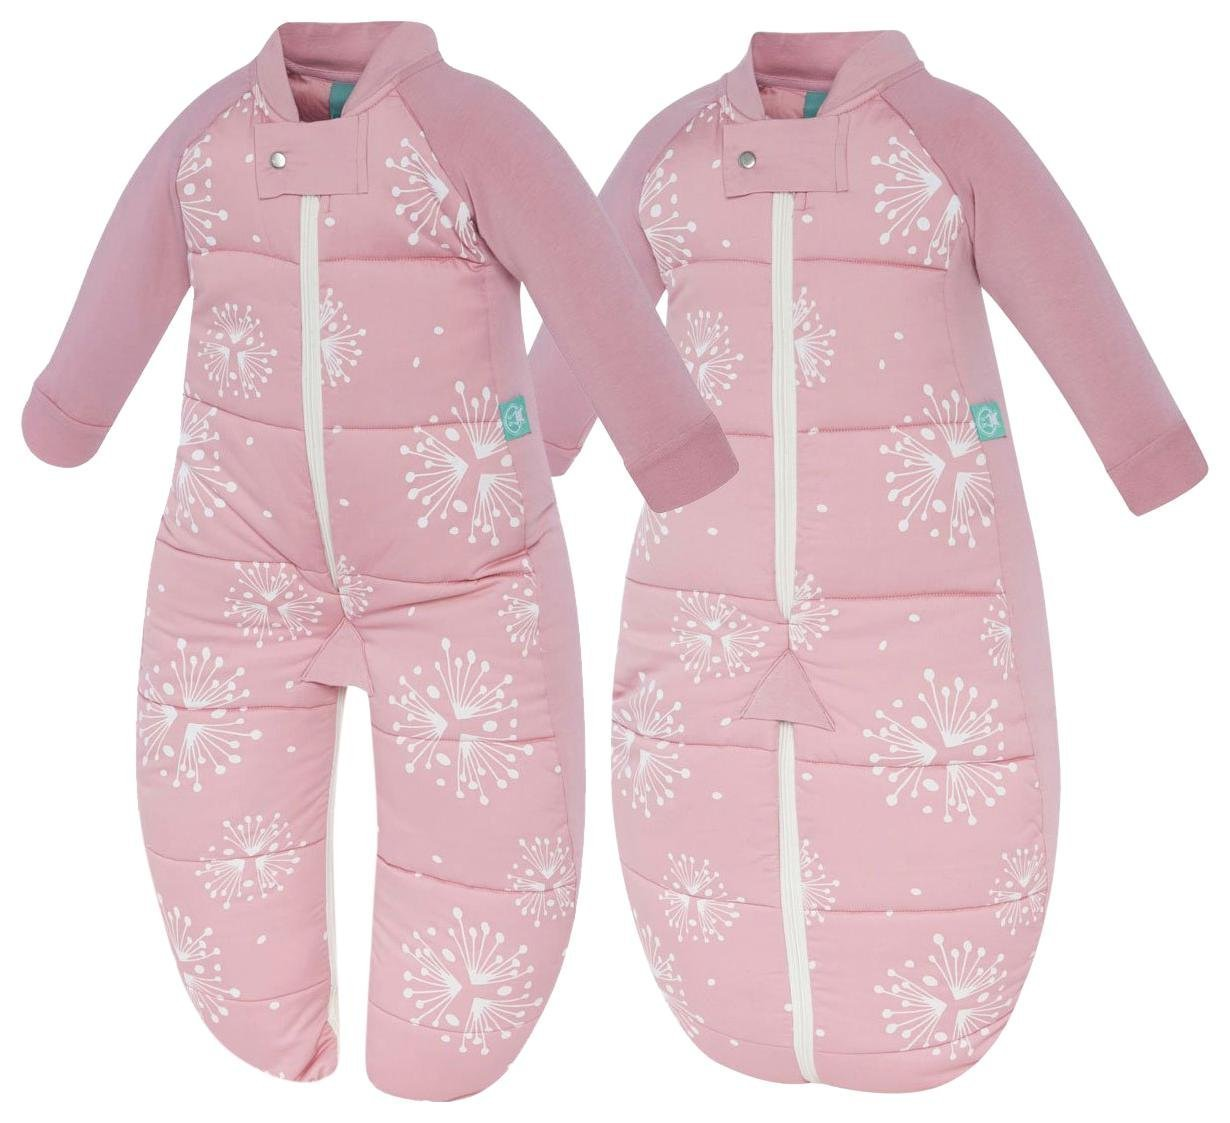 f26941152758 Amazon.com  ergopouch 3.5 Tog Sleep Suit Bag